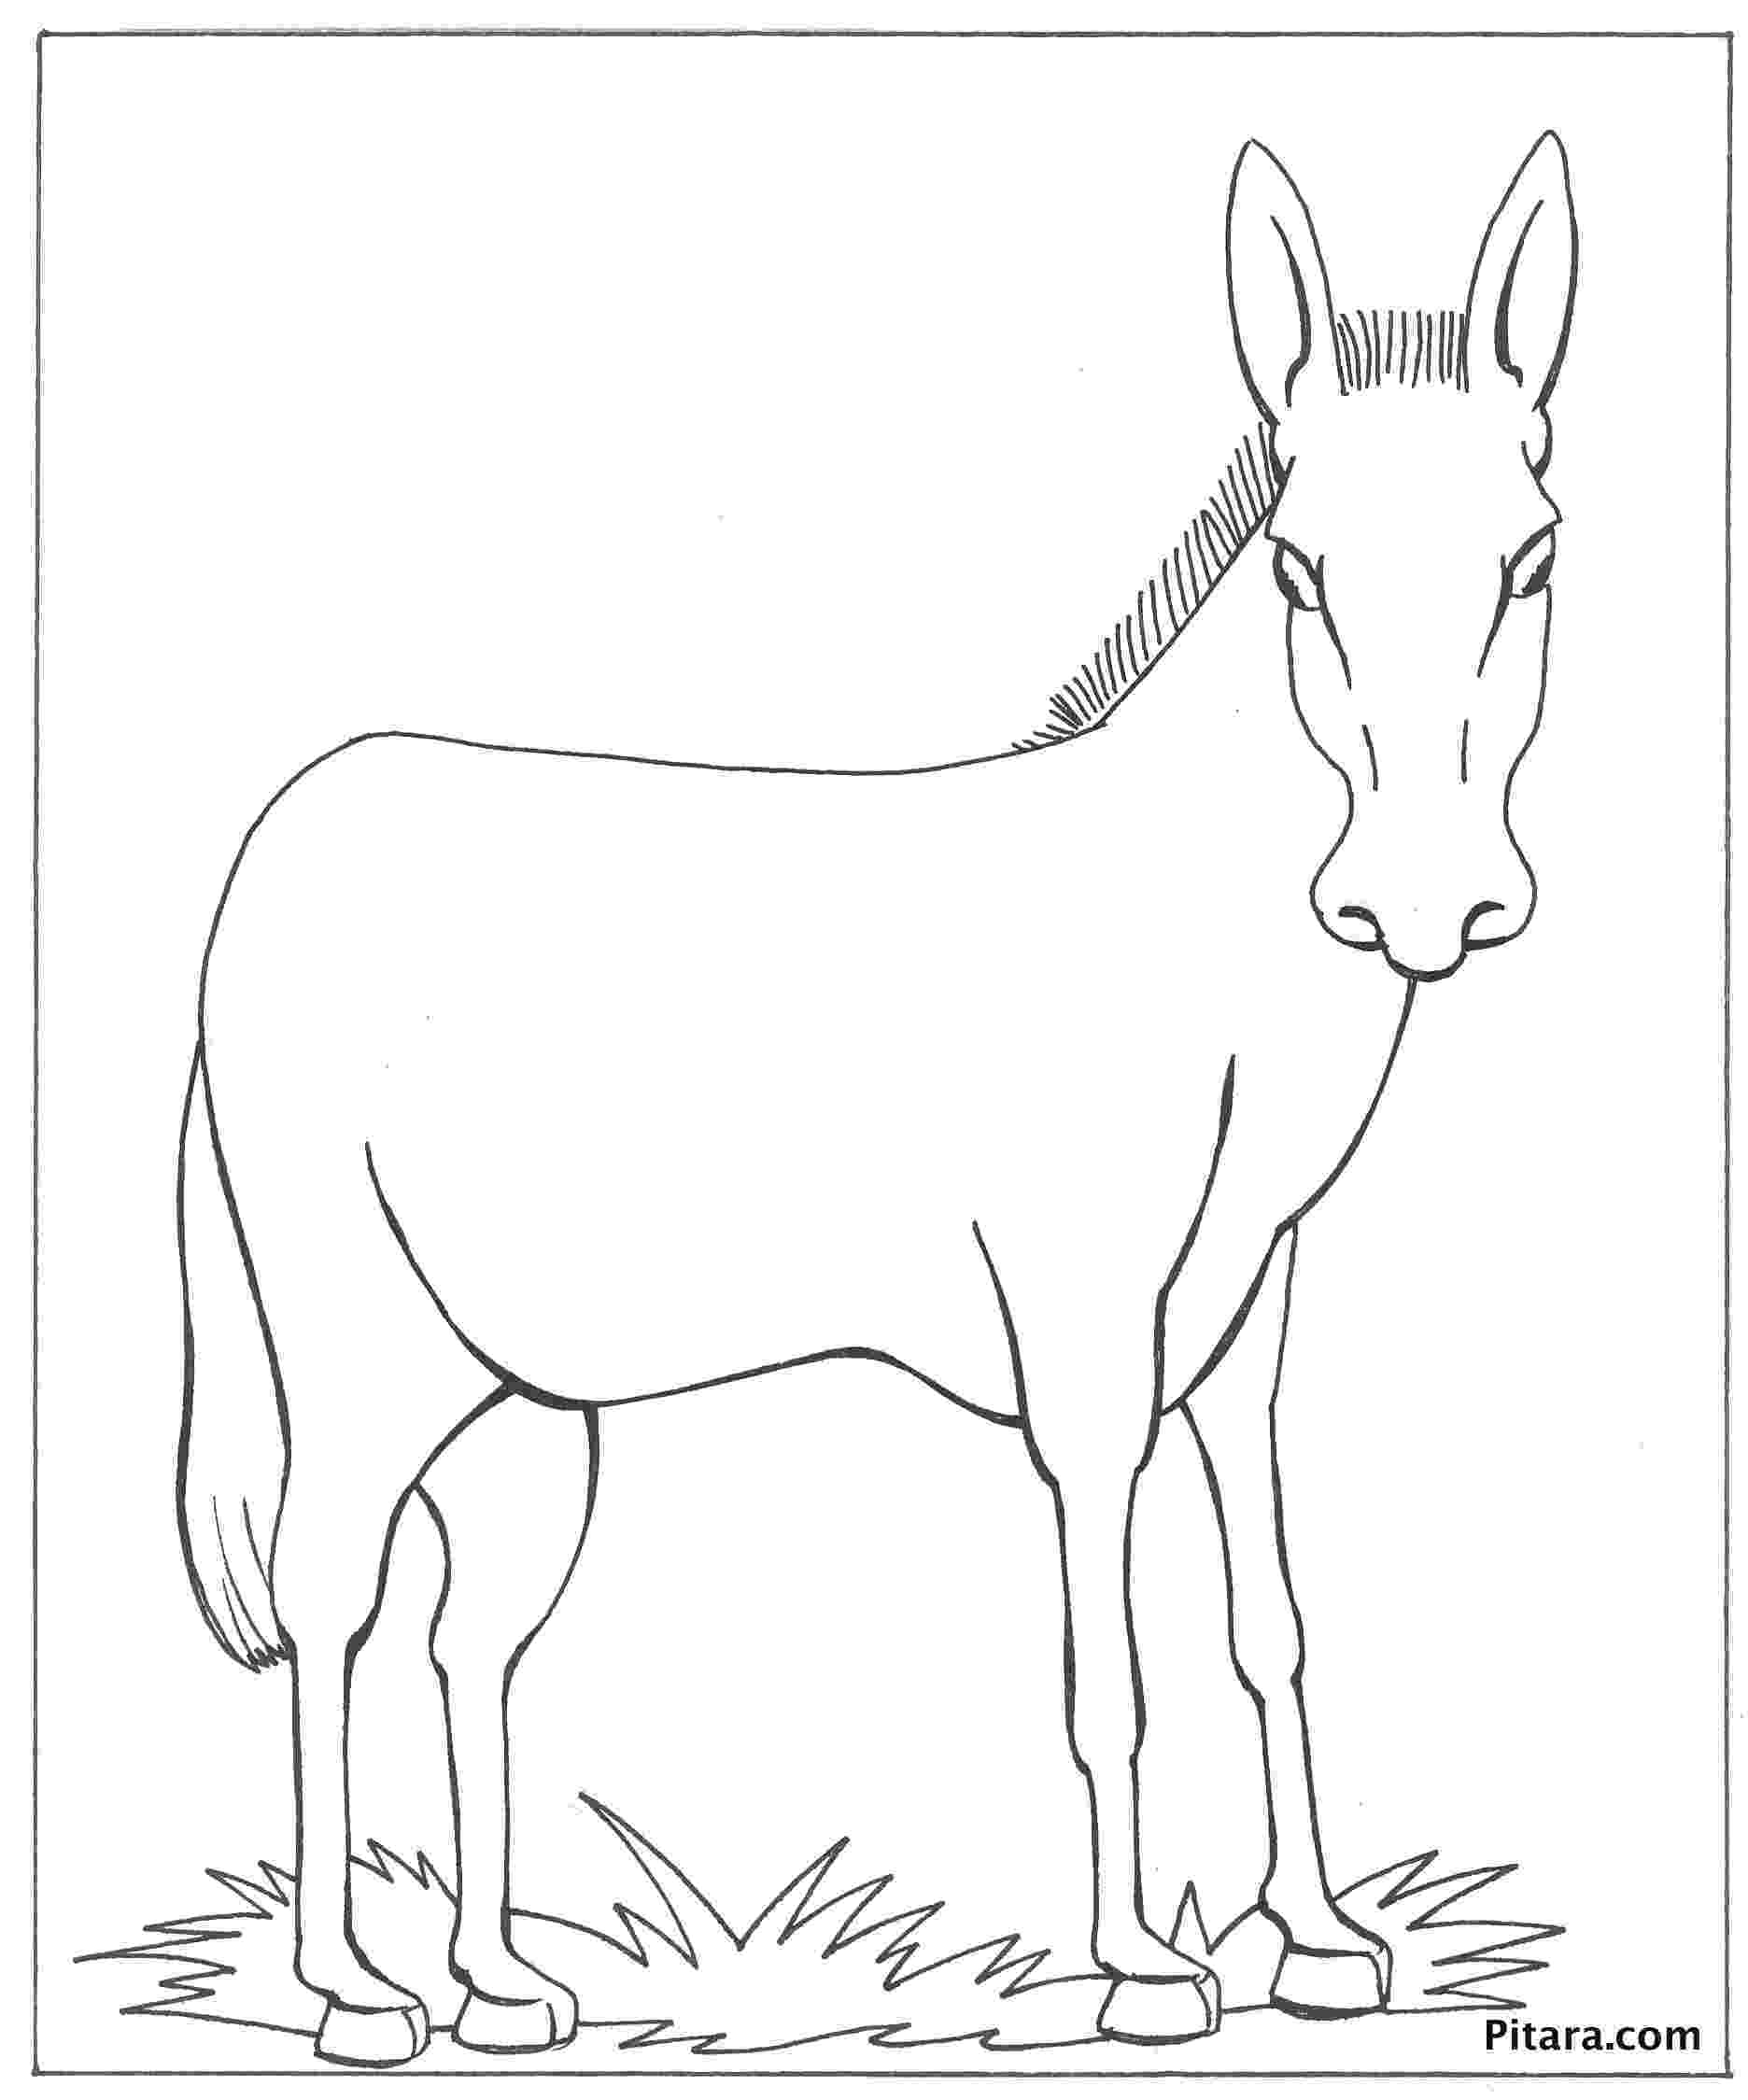 donkey pictures to colour donkey coloring pages to download and print for free to colour pictures donkey